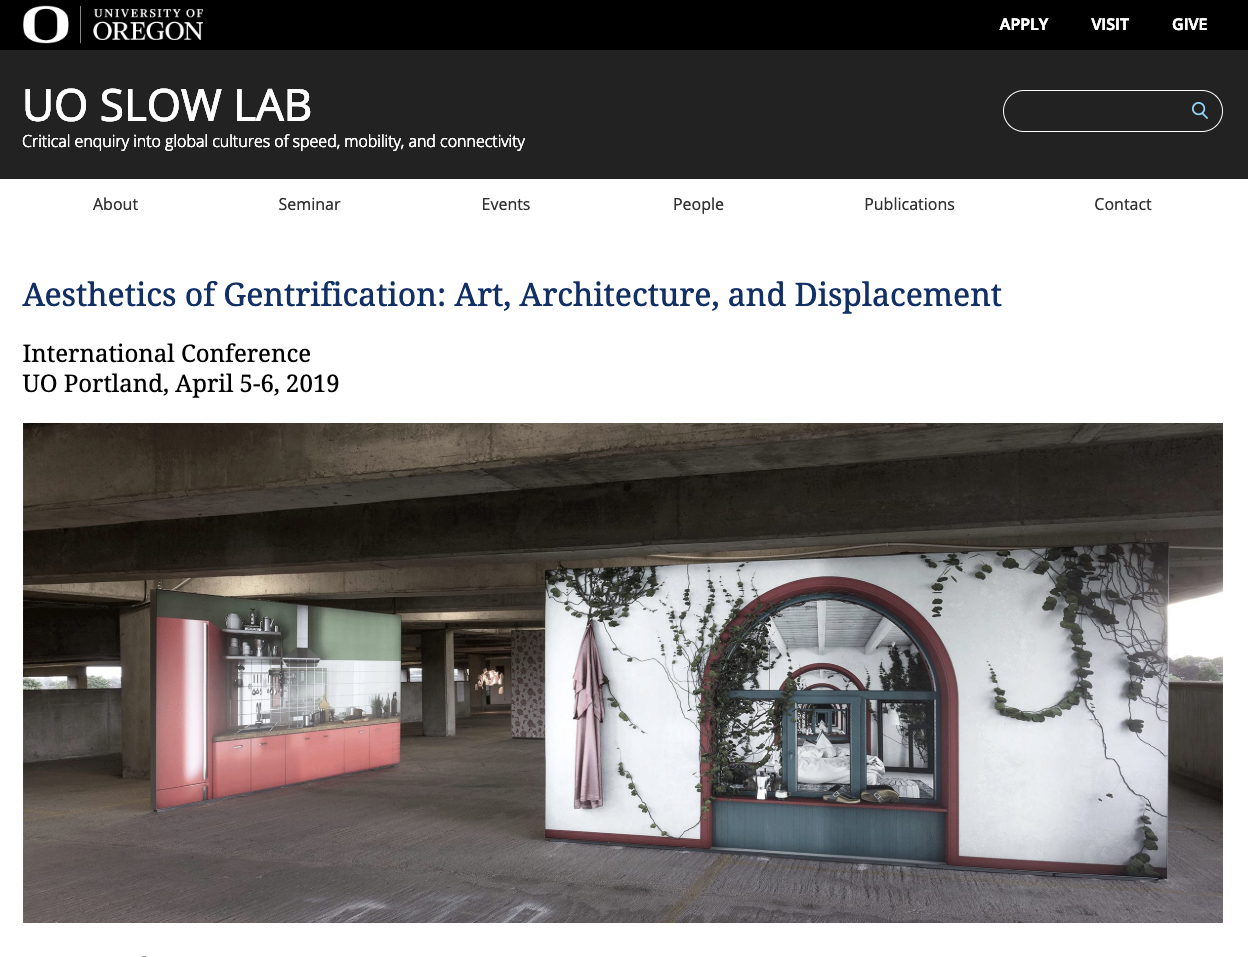 Aesthetics of Gentrification International Conference